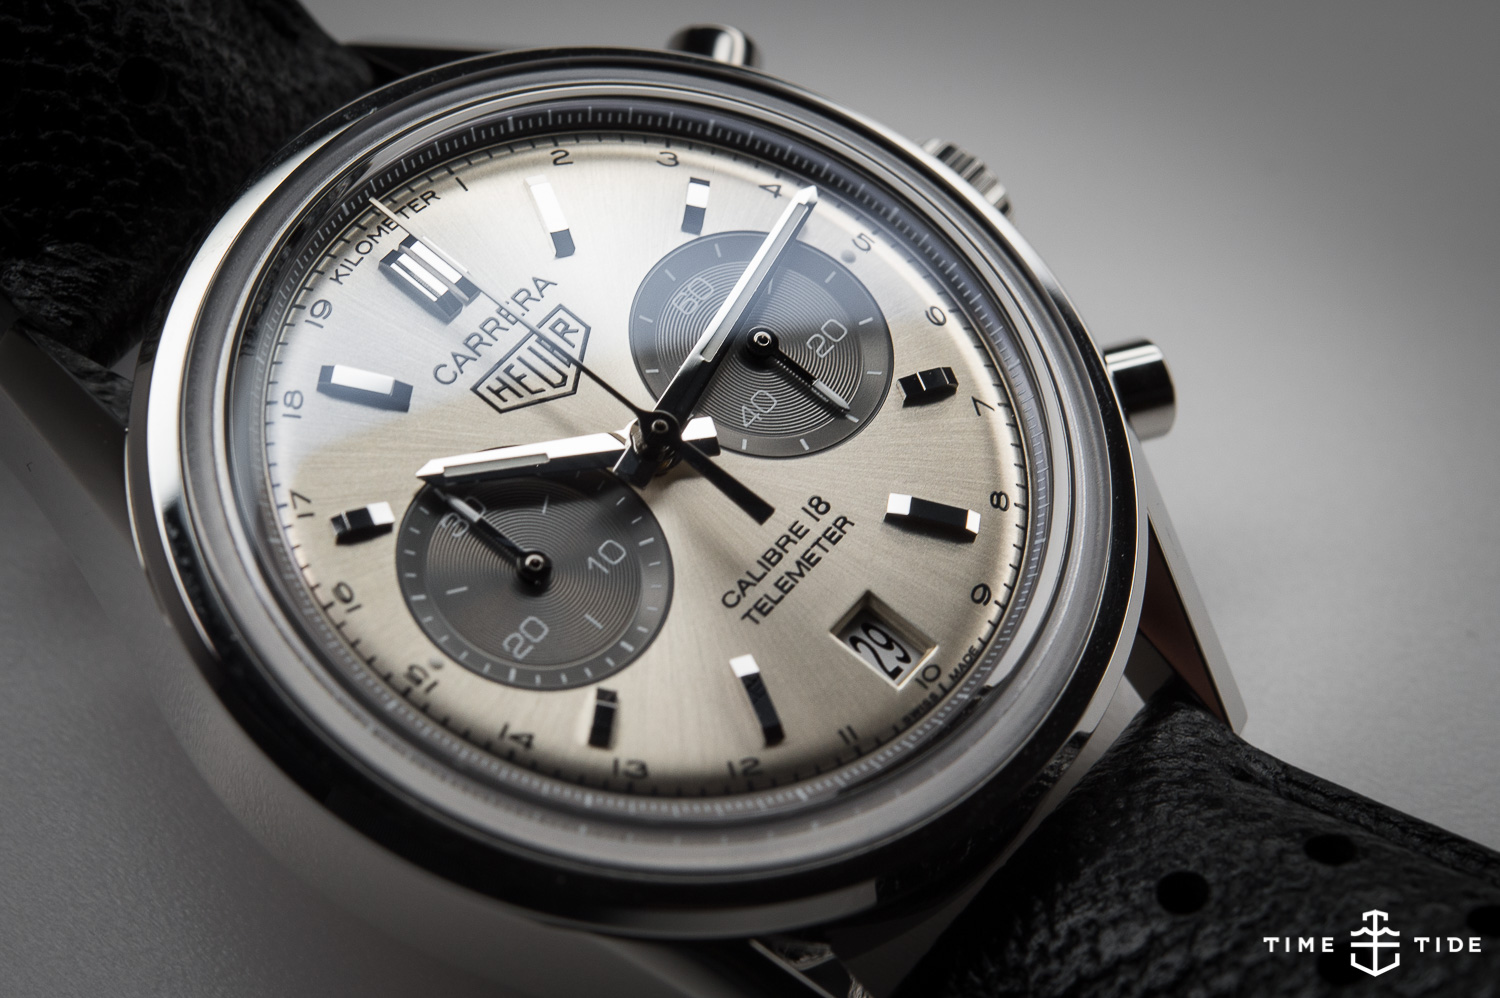 HANDS-ON: The TAG Heuer Carrera Calibre 18 Telemeter ...